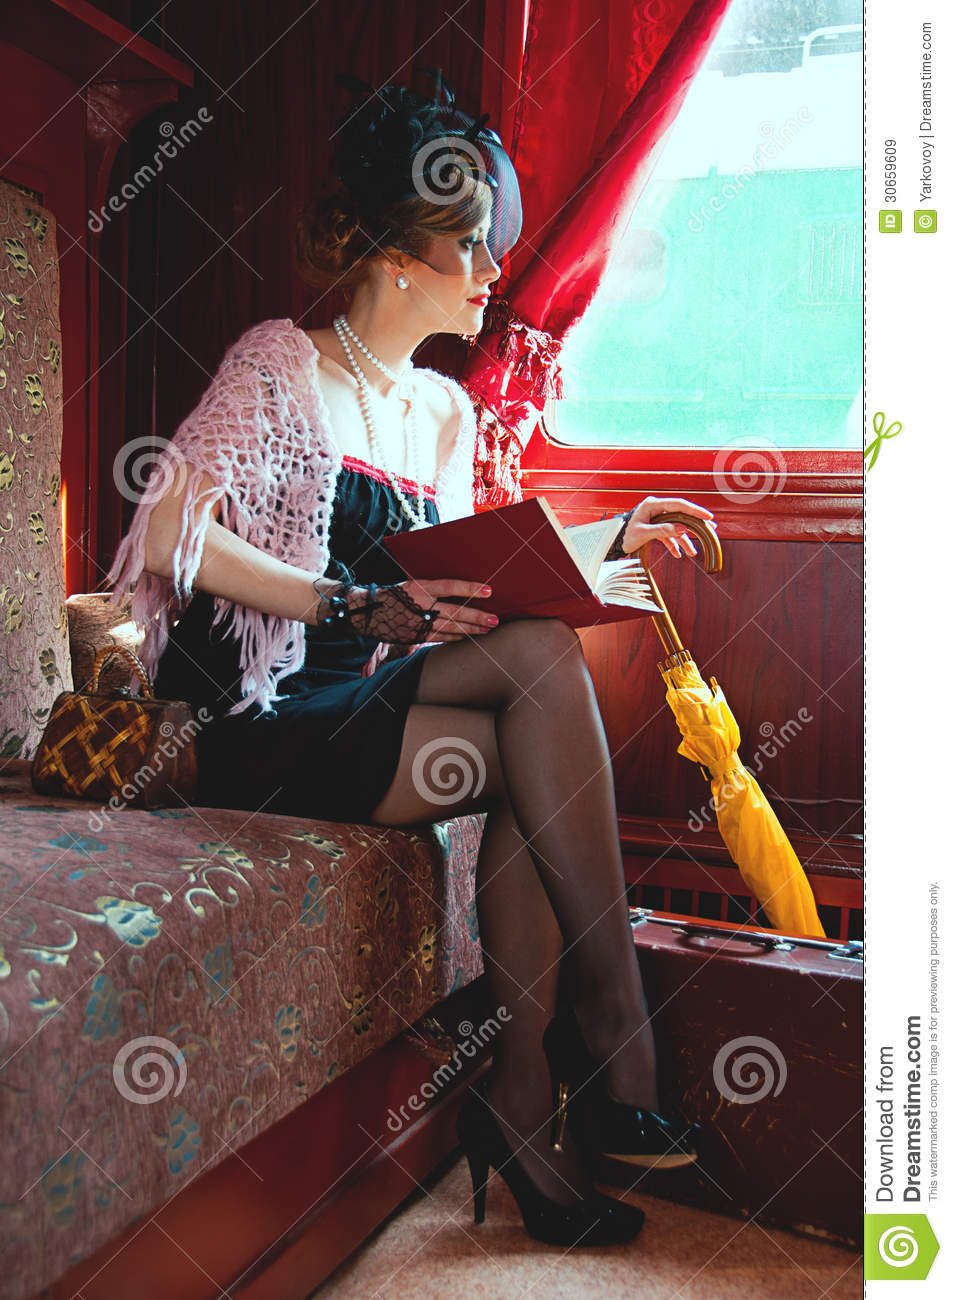 Retro Girl Reading Book In Wagon Train Royalty Free Stock Images  Image 30659609